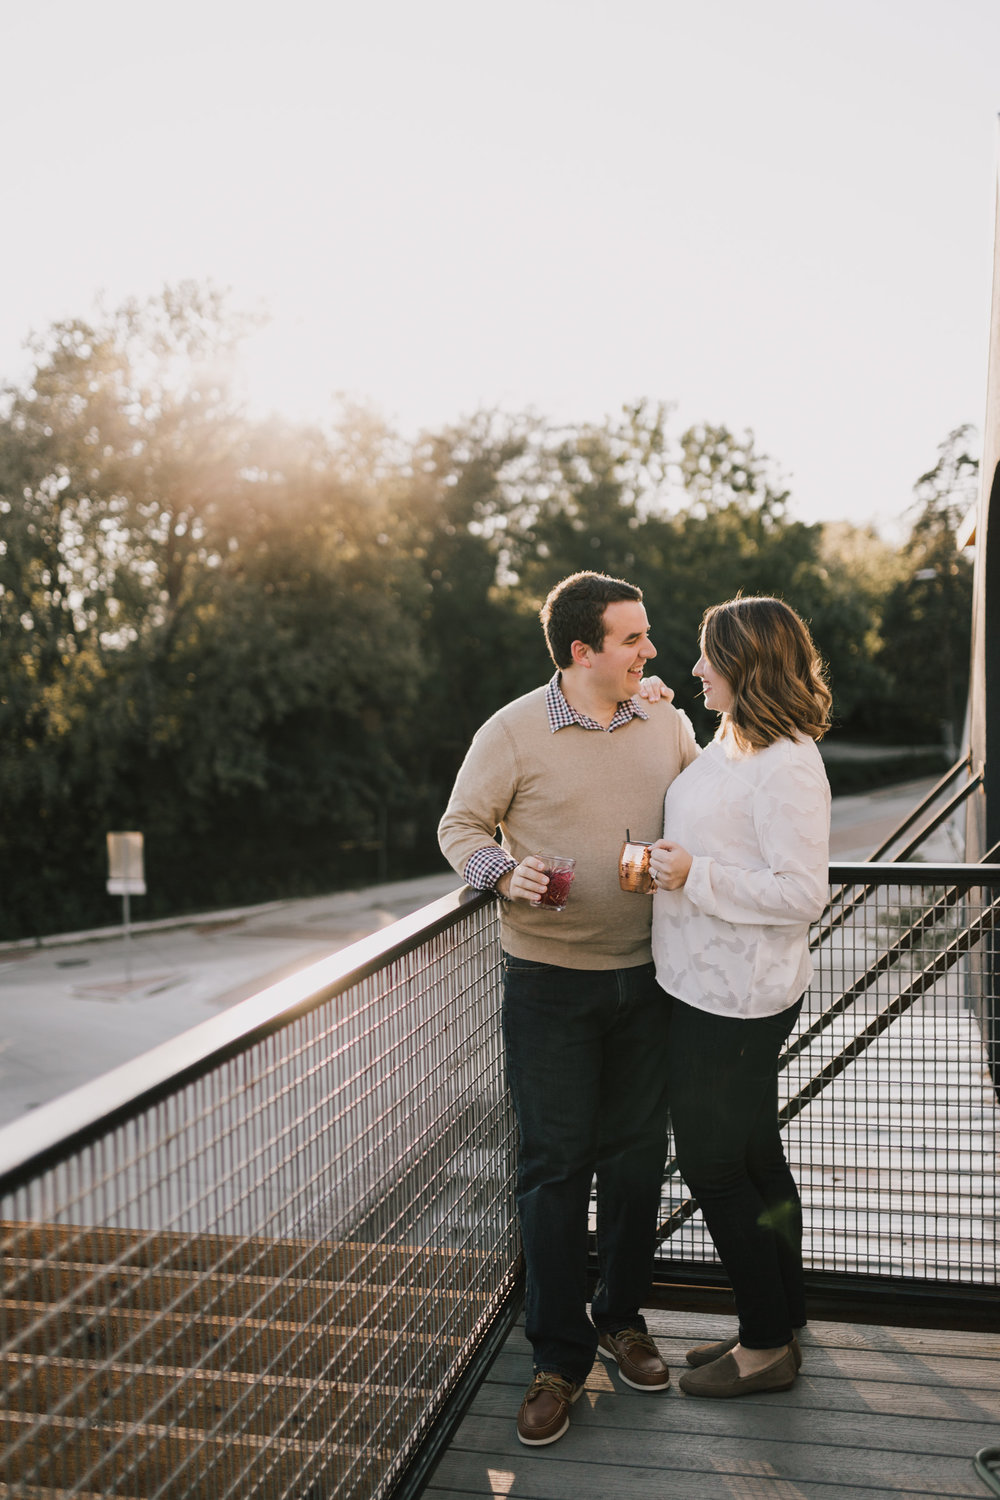 alyssa barletter photography mclains market lawrence kansas fall engagement session ku potter lake-11.jpg